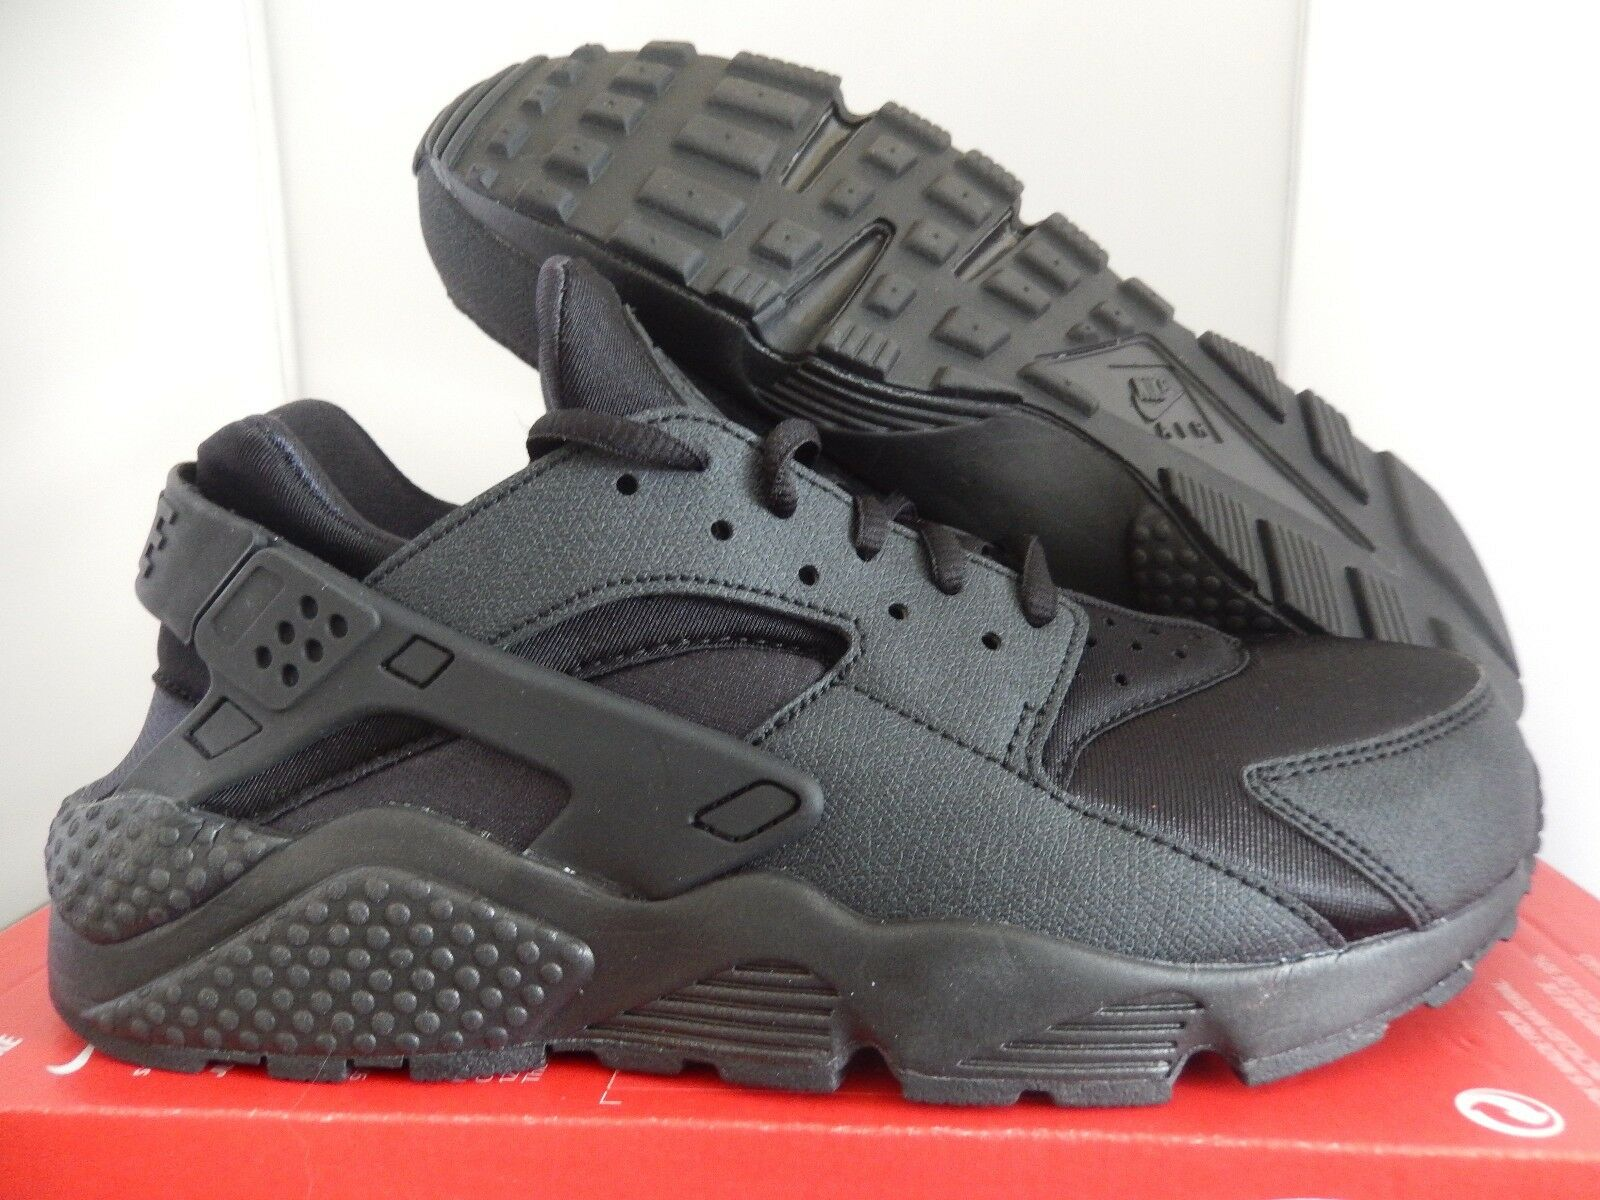 WMNS NIKE AIR HUARACHE RUN BLACK-BLACK SZ 9 [634835-009]